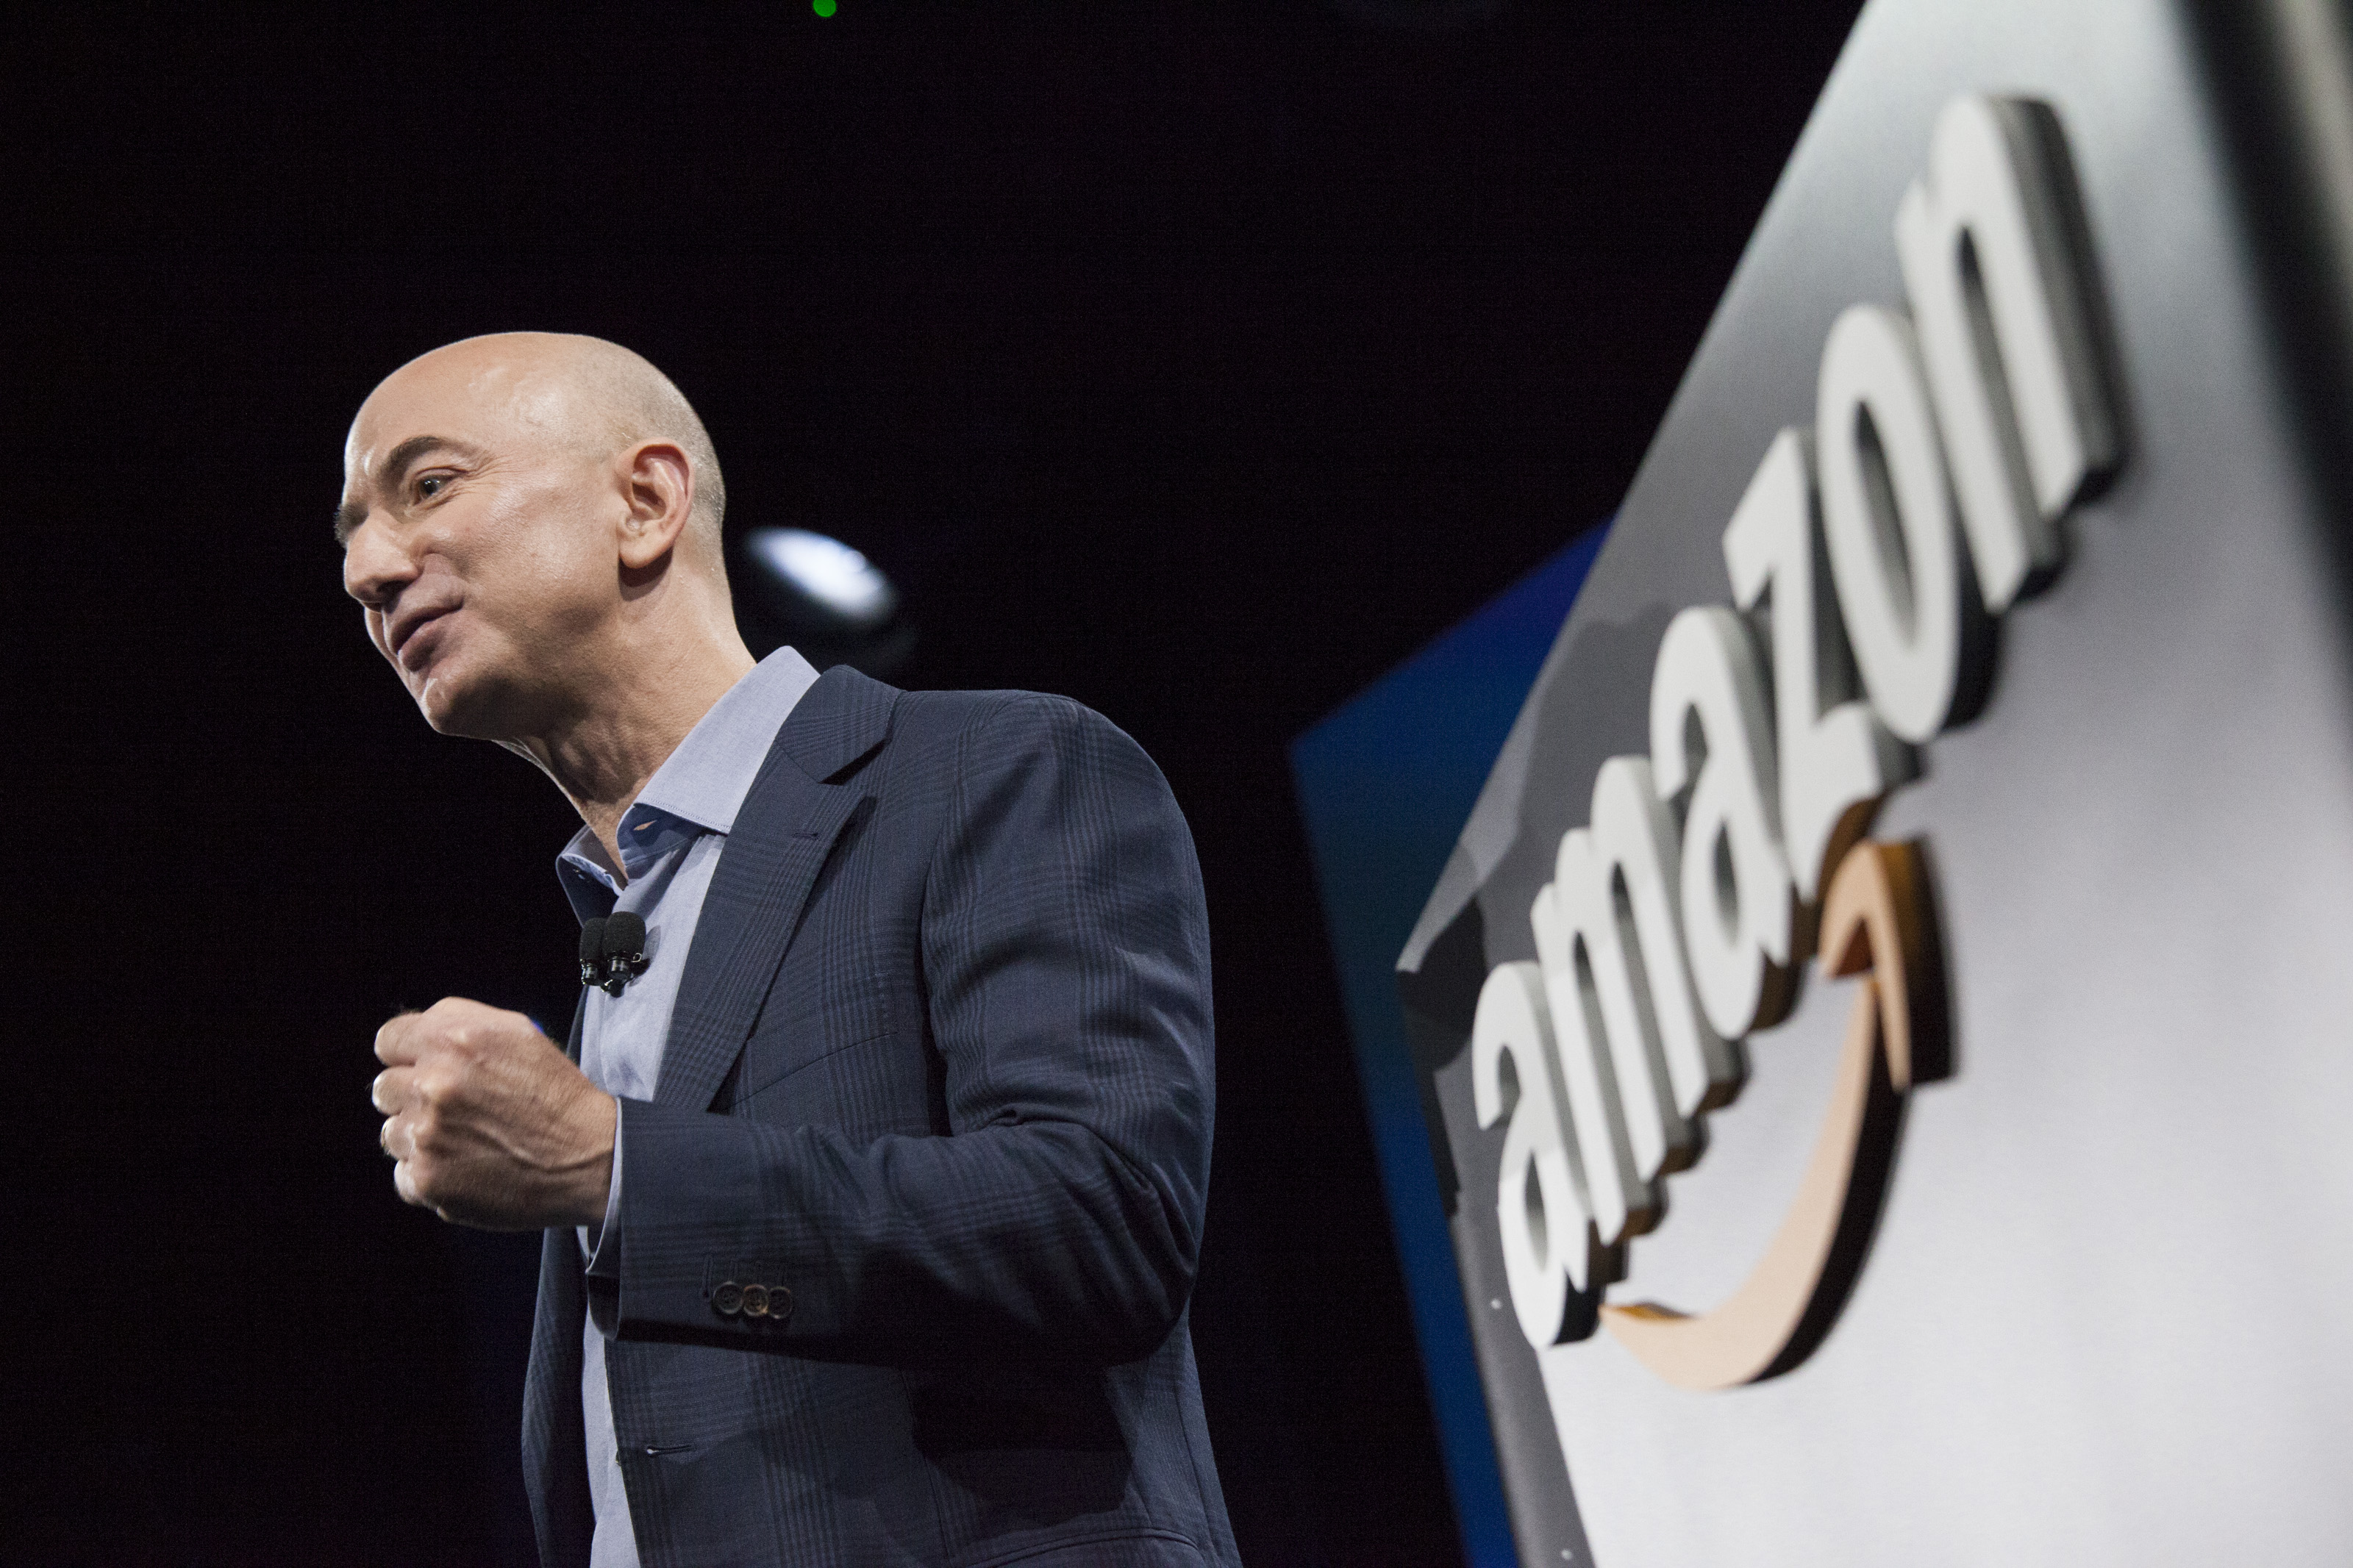 Amazon.com founder and CEO Jeff Bezos presents the company's first smartphone, the Fire Phone, on June 18, 2014 in Seattle, Washington. The much-anticipated device is available for pre-order today and is available exclusively with AT&T service